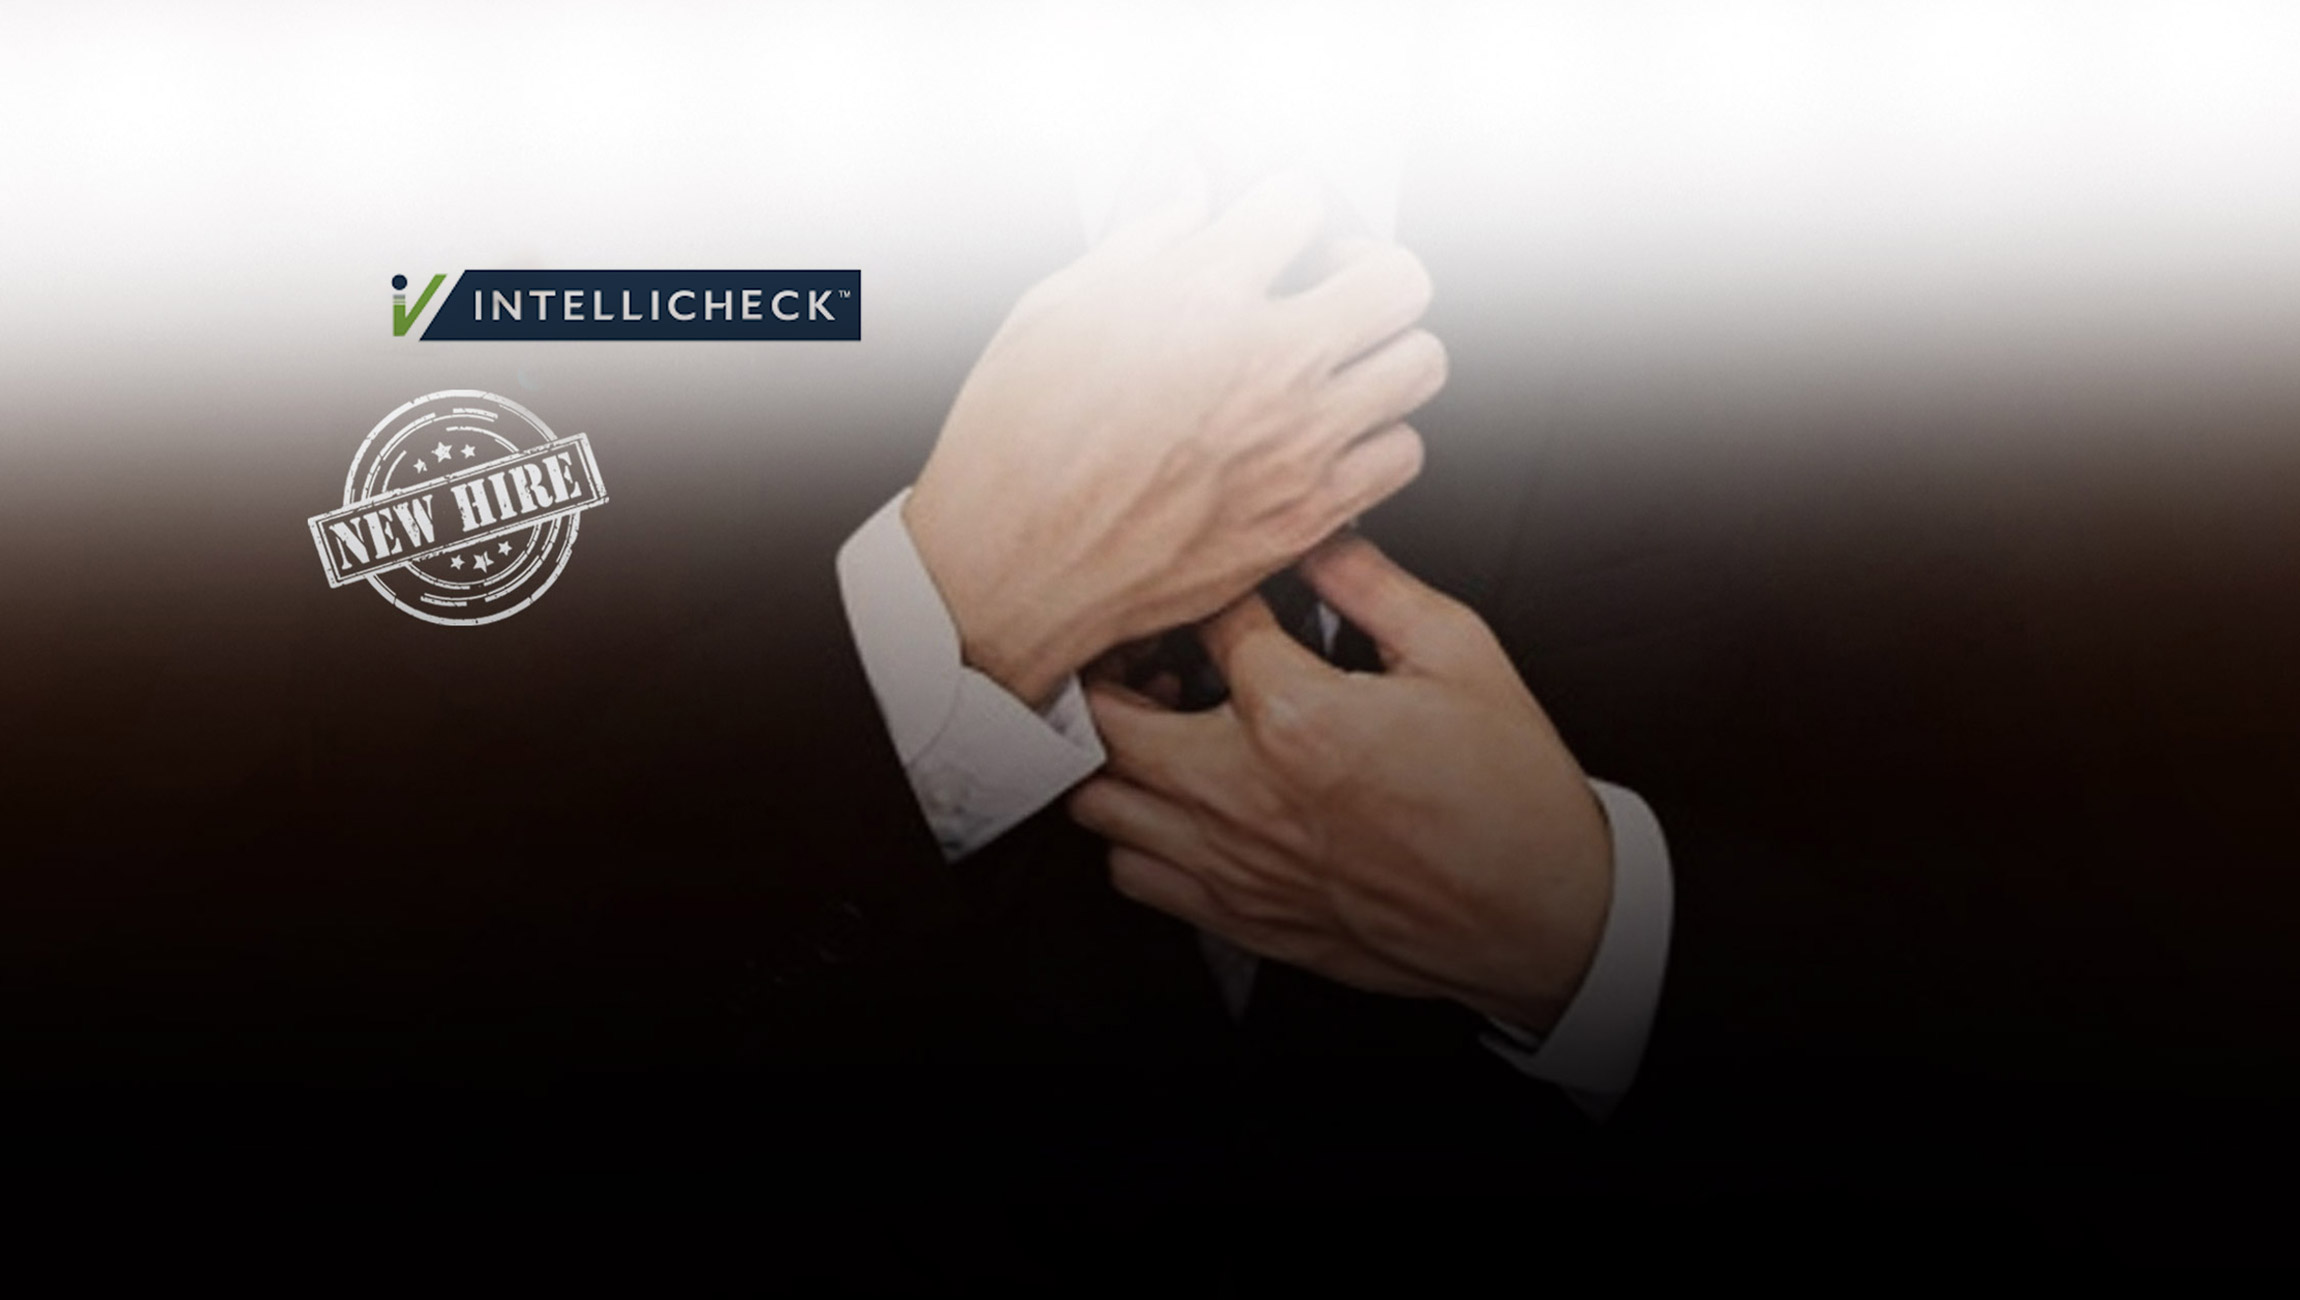 Intellicheck Appoints New Vice President of Sales